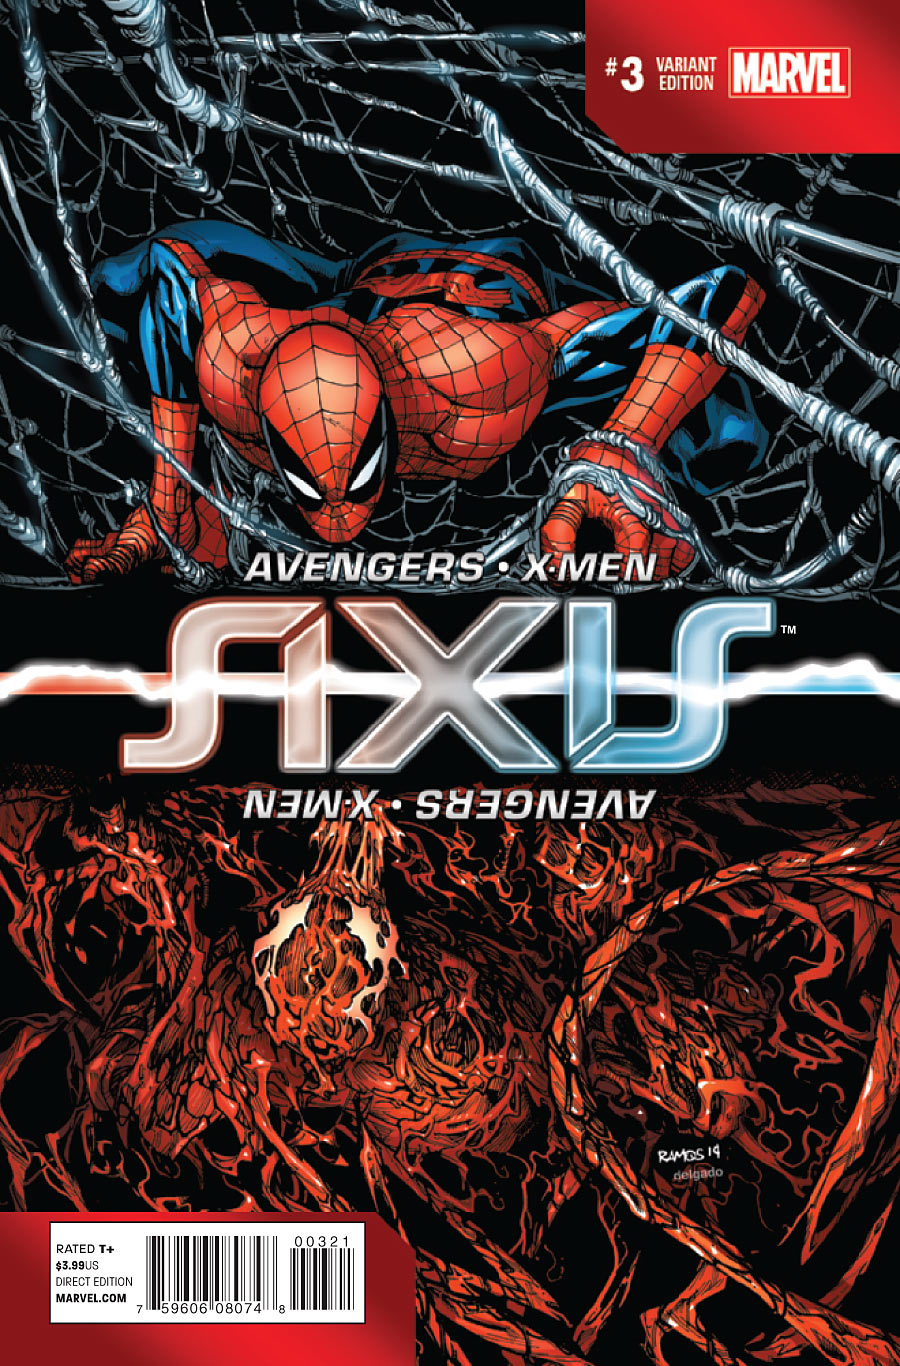 AXIS #3 variant